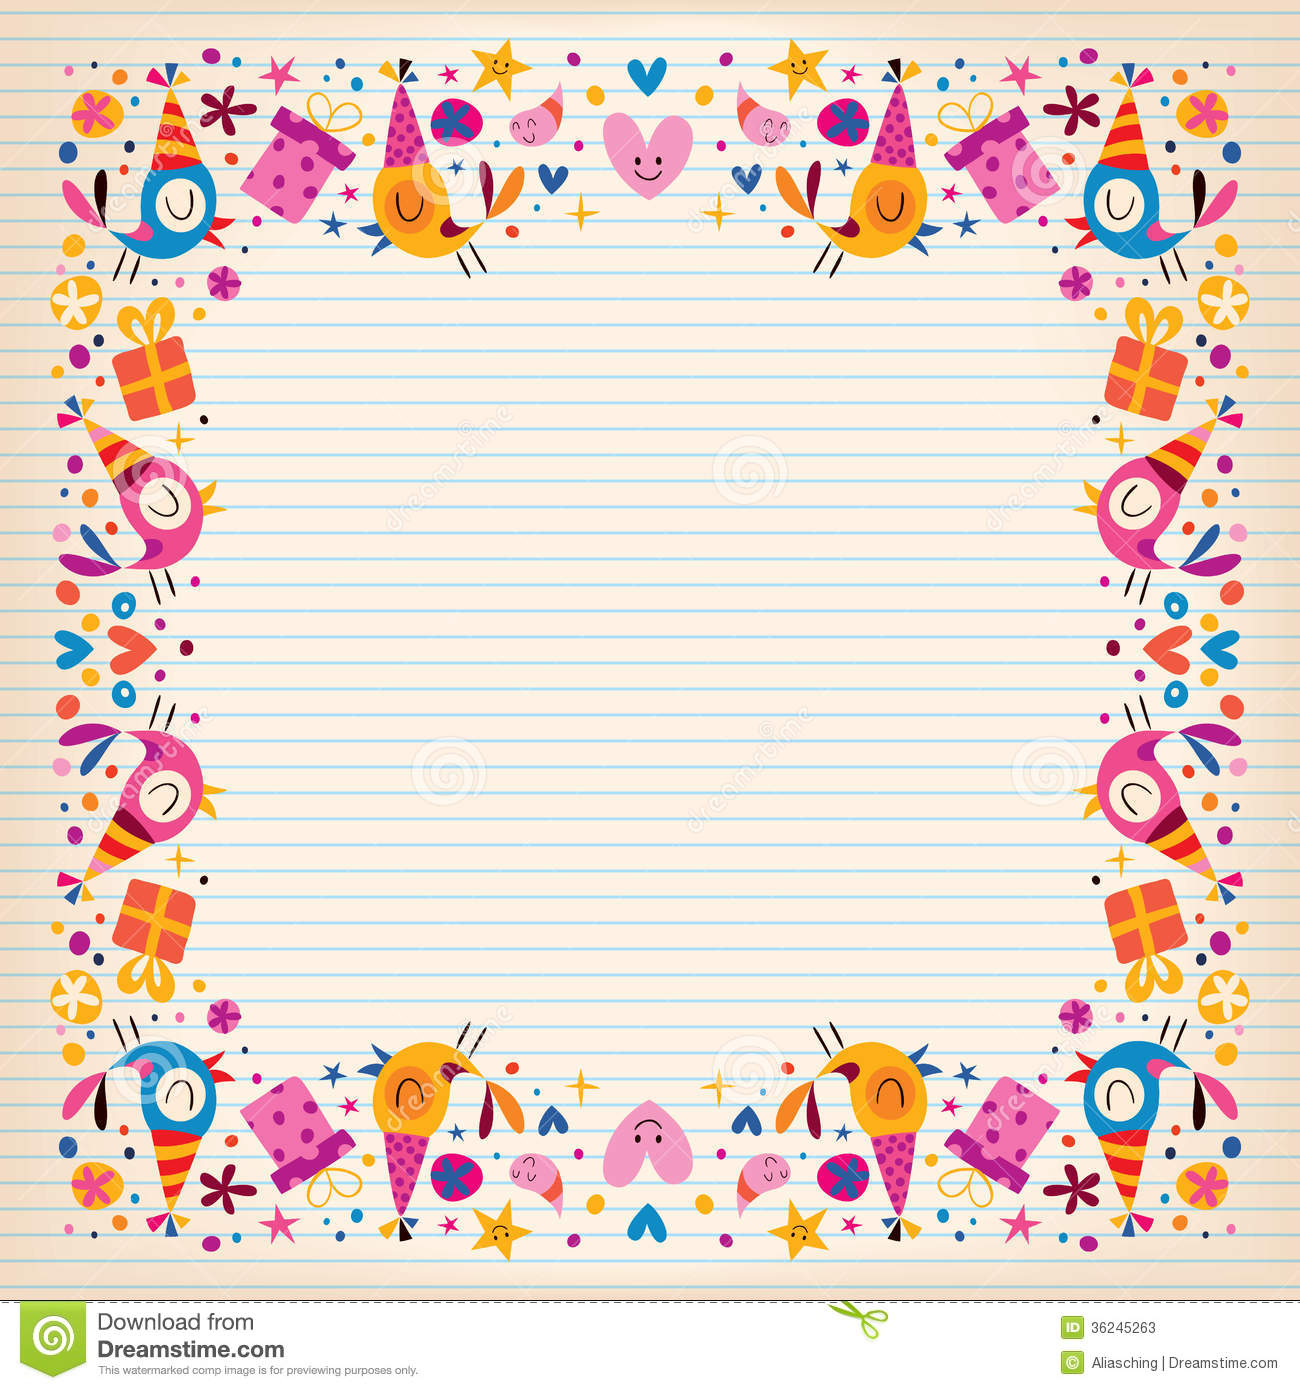 happy birthday border images ; happy-birthday-border-lined-paper-card-space-text-decorative-frame-design-36245263